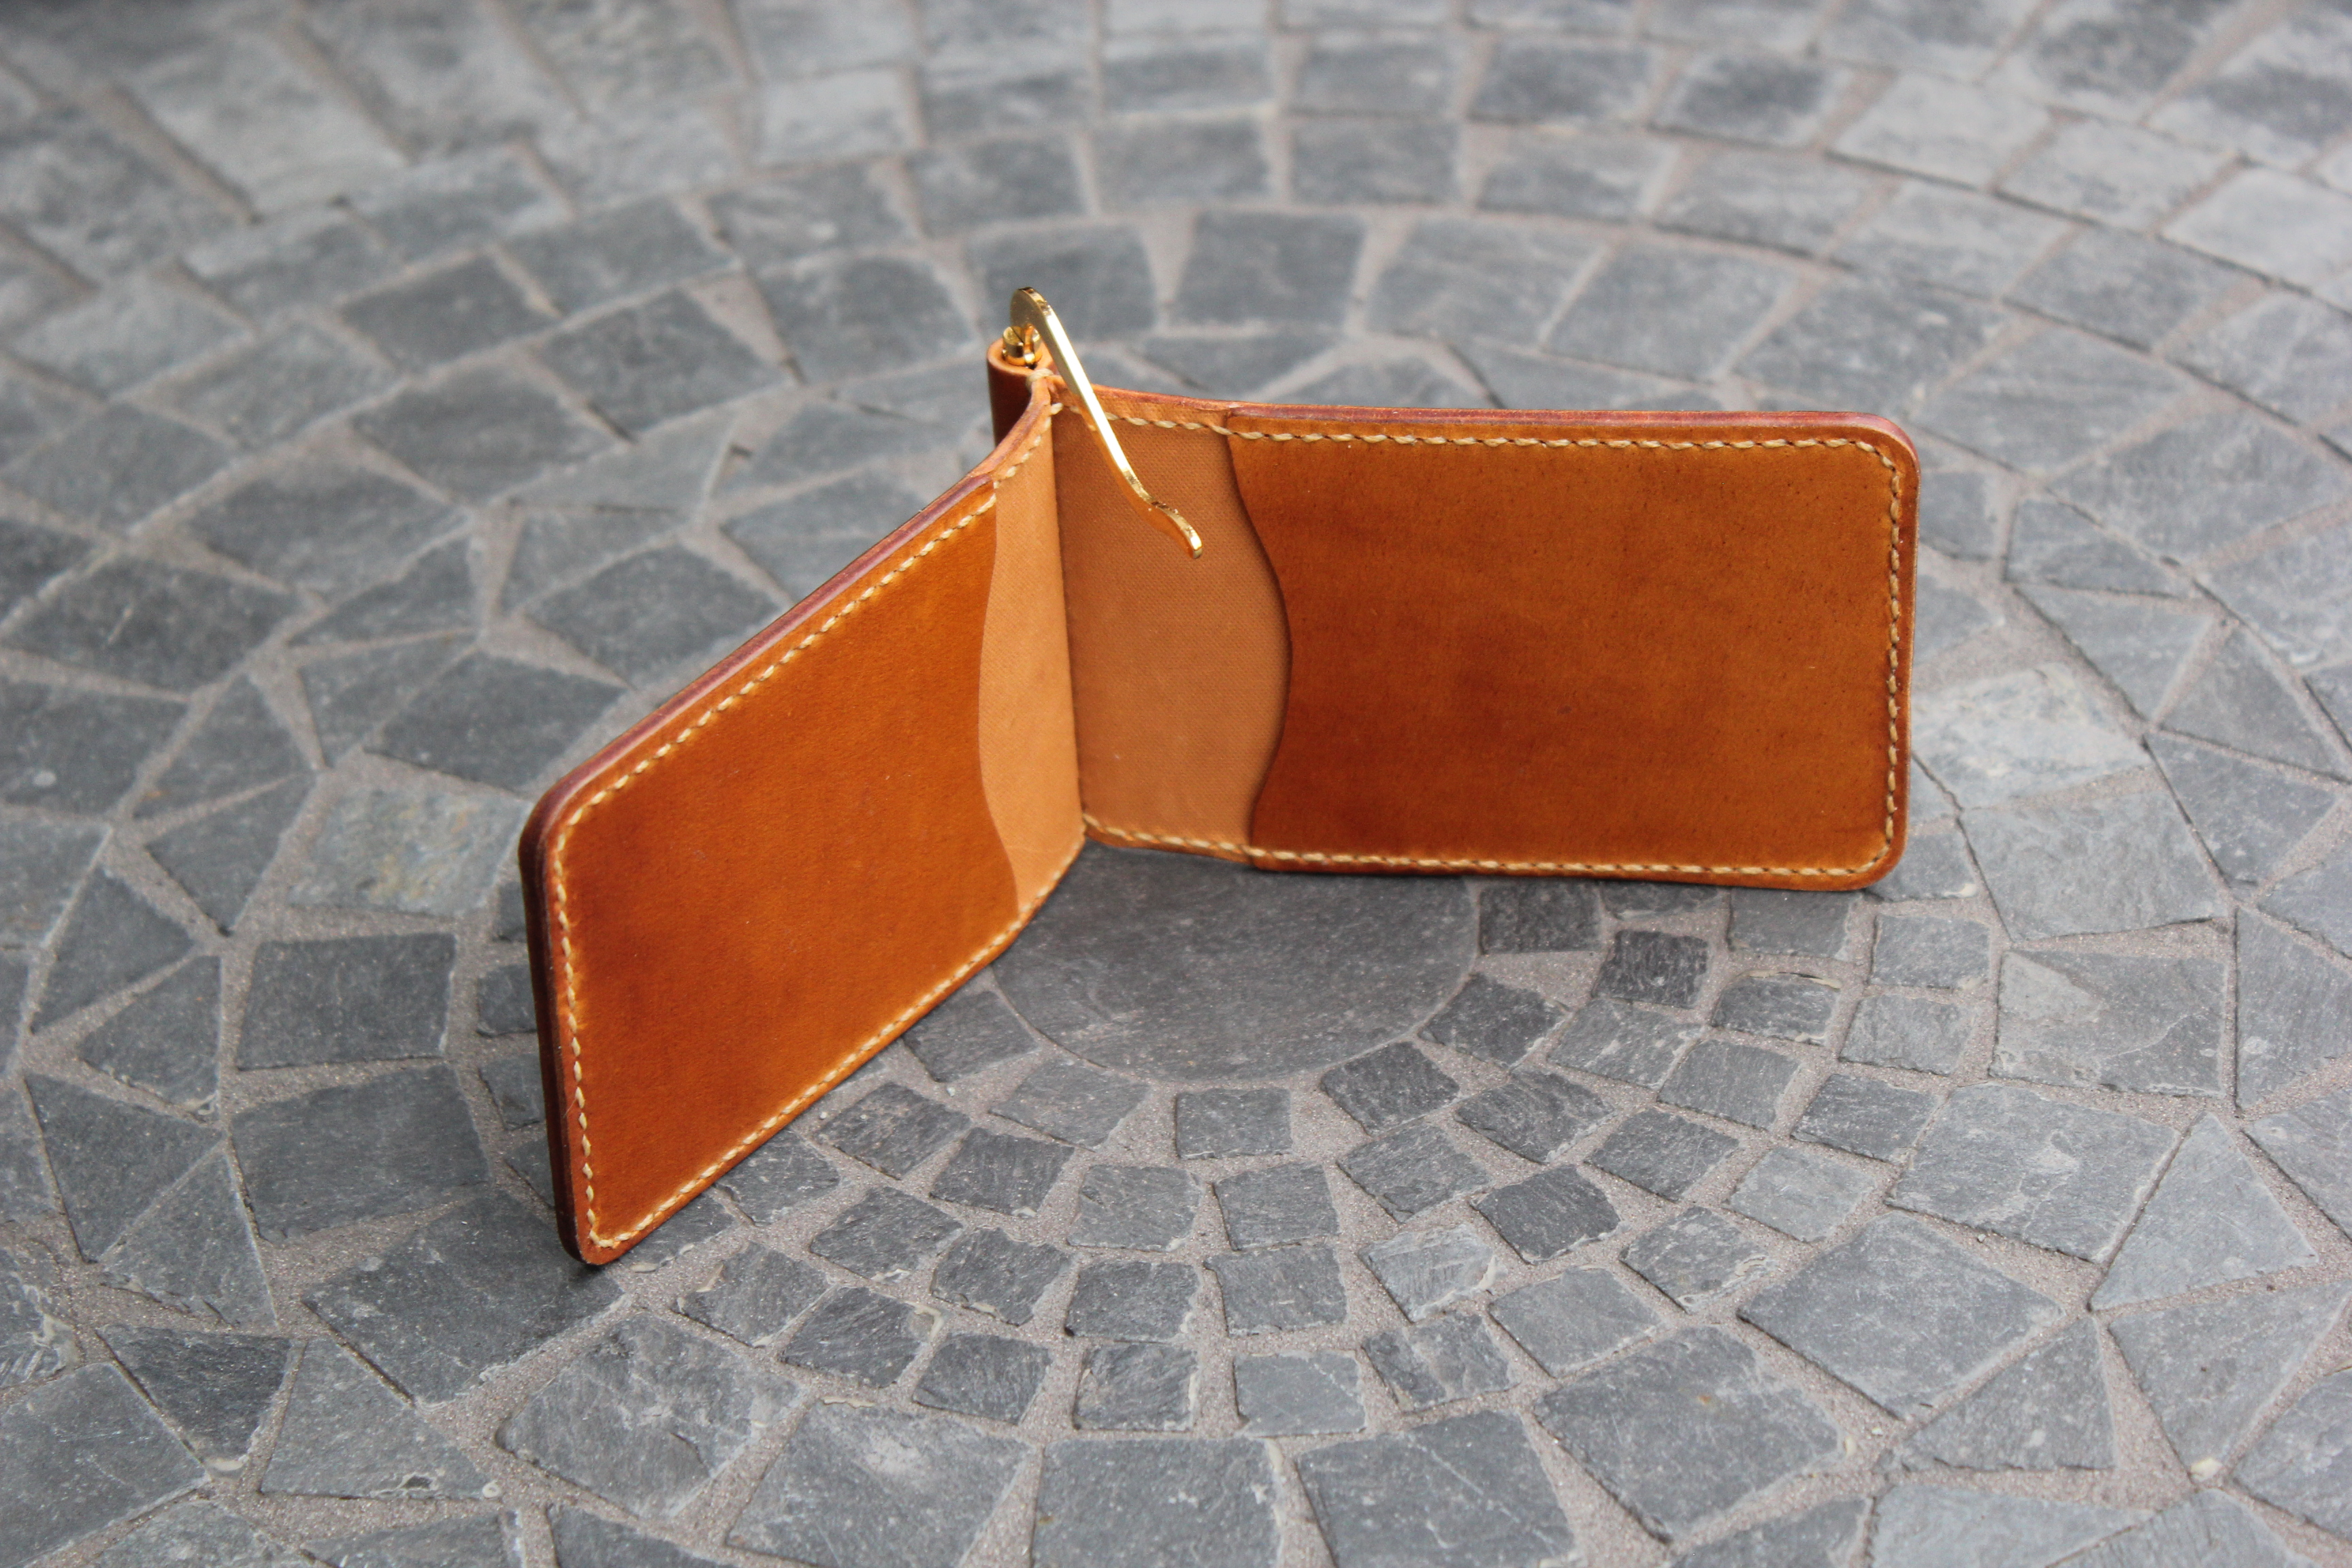 0526575e3a7a Also experimented with a more complex interior for the money clip wallet.